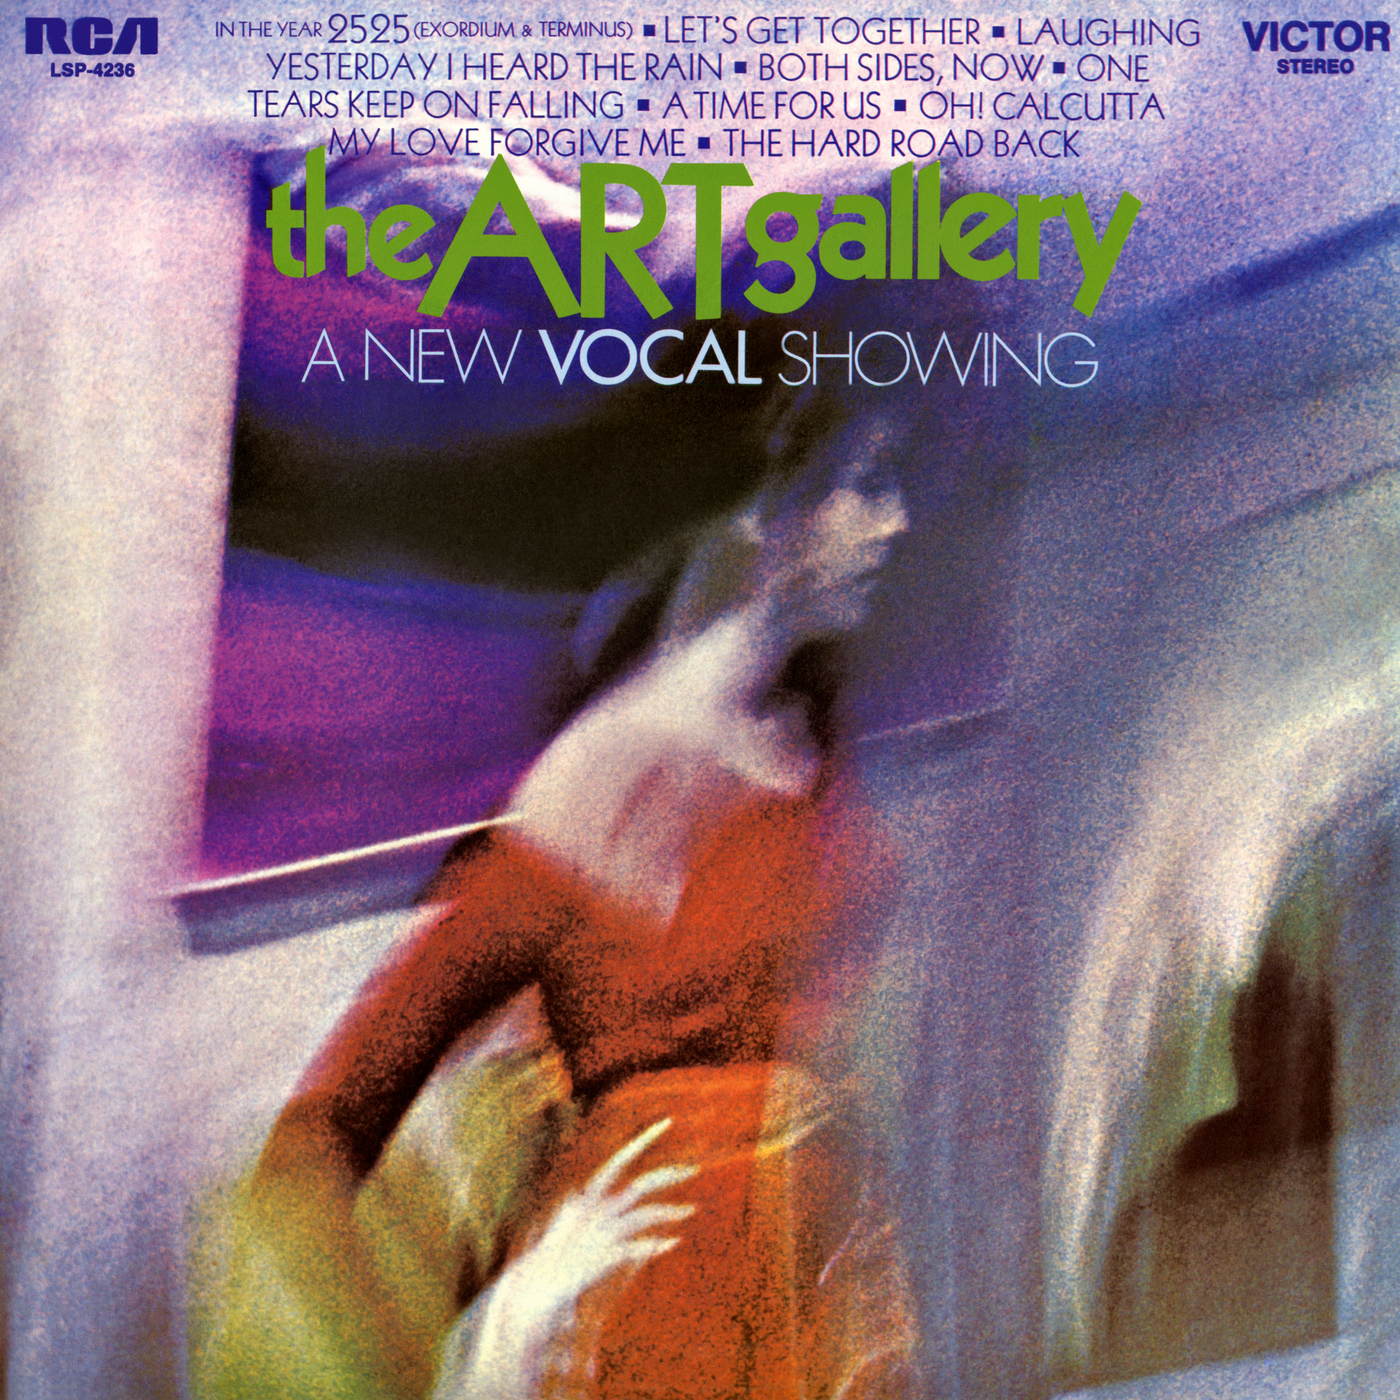 A New Vocal Showing - The Art Gallery